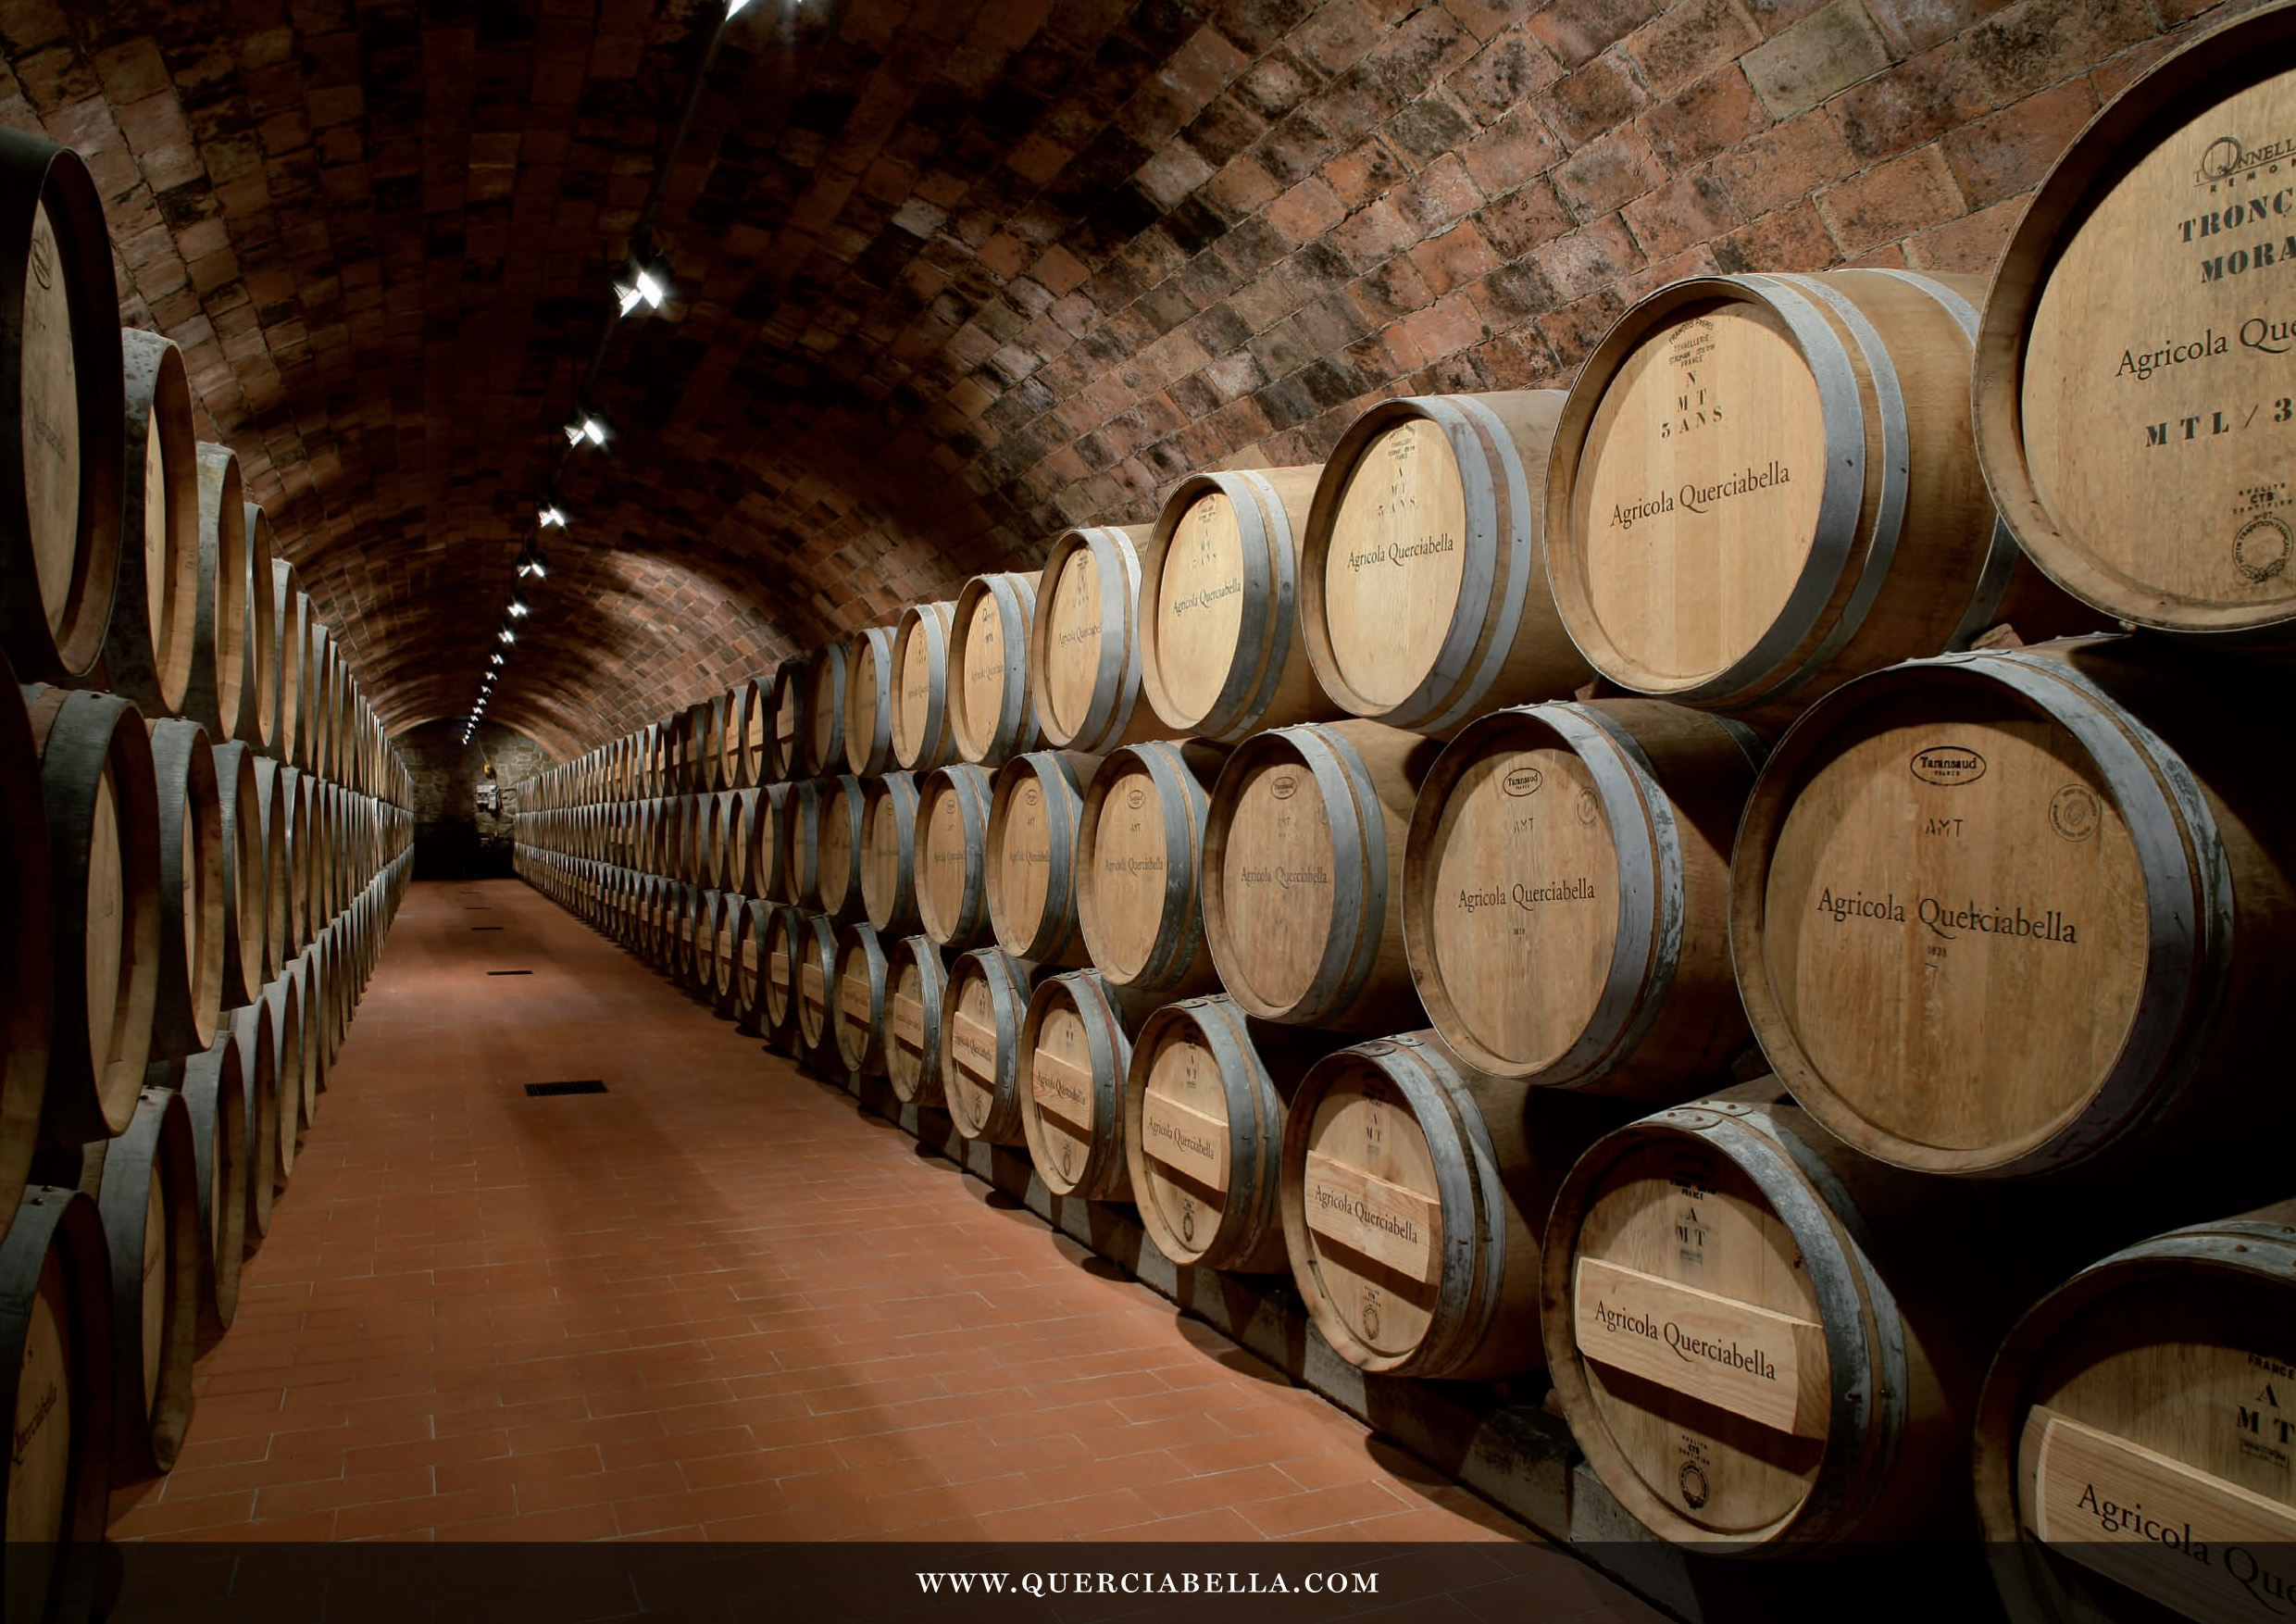 File:Q-06 Barrique cellar at Querciabella, Greve in Chianti.jpg